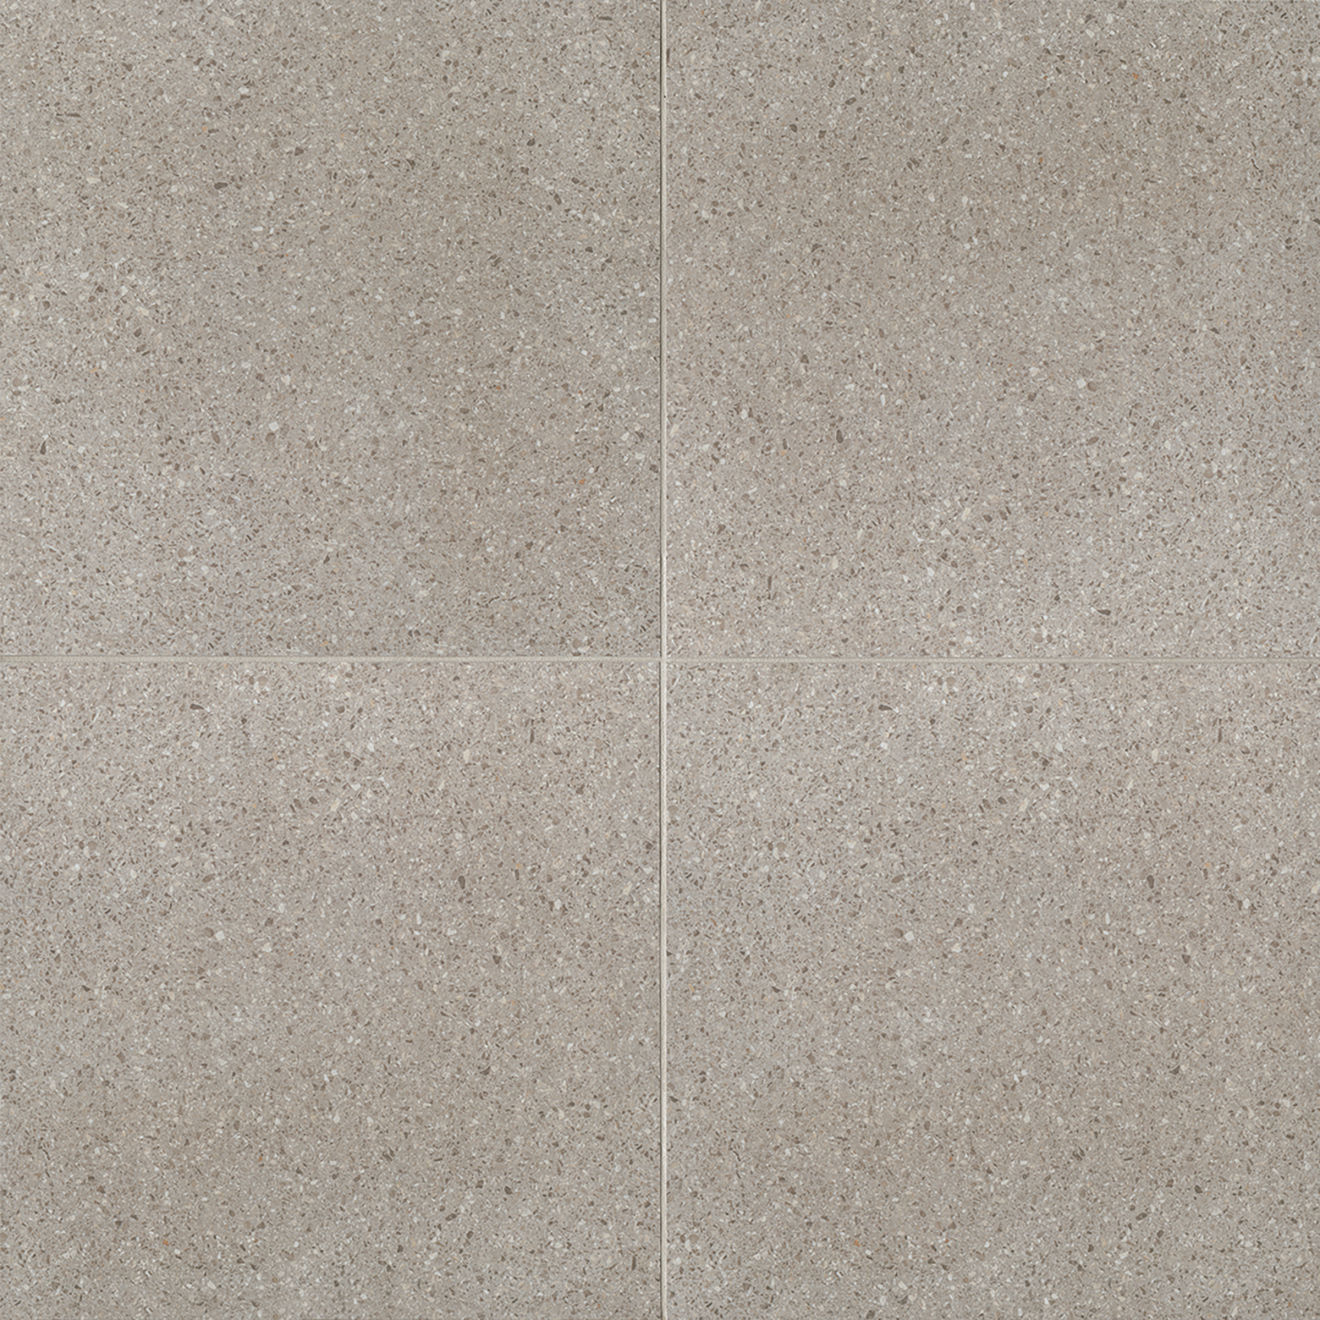 Terrazzo 10 X 10 Floor Wall Tile In Light Gray